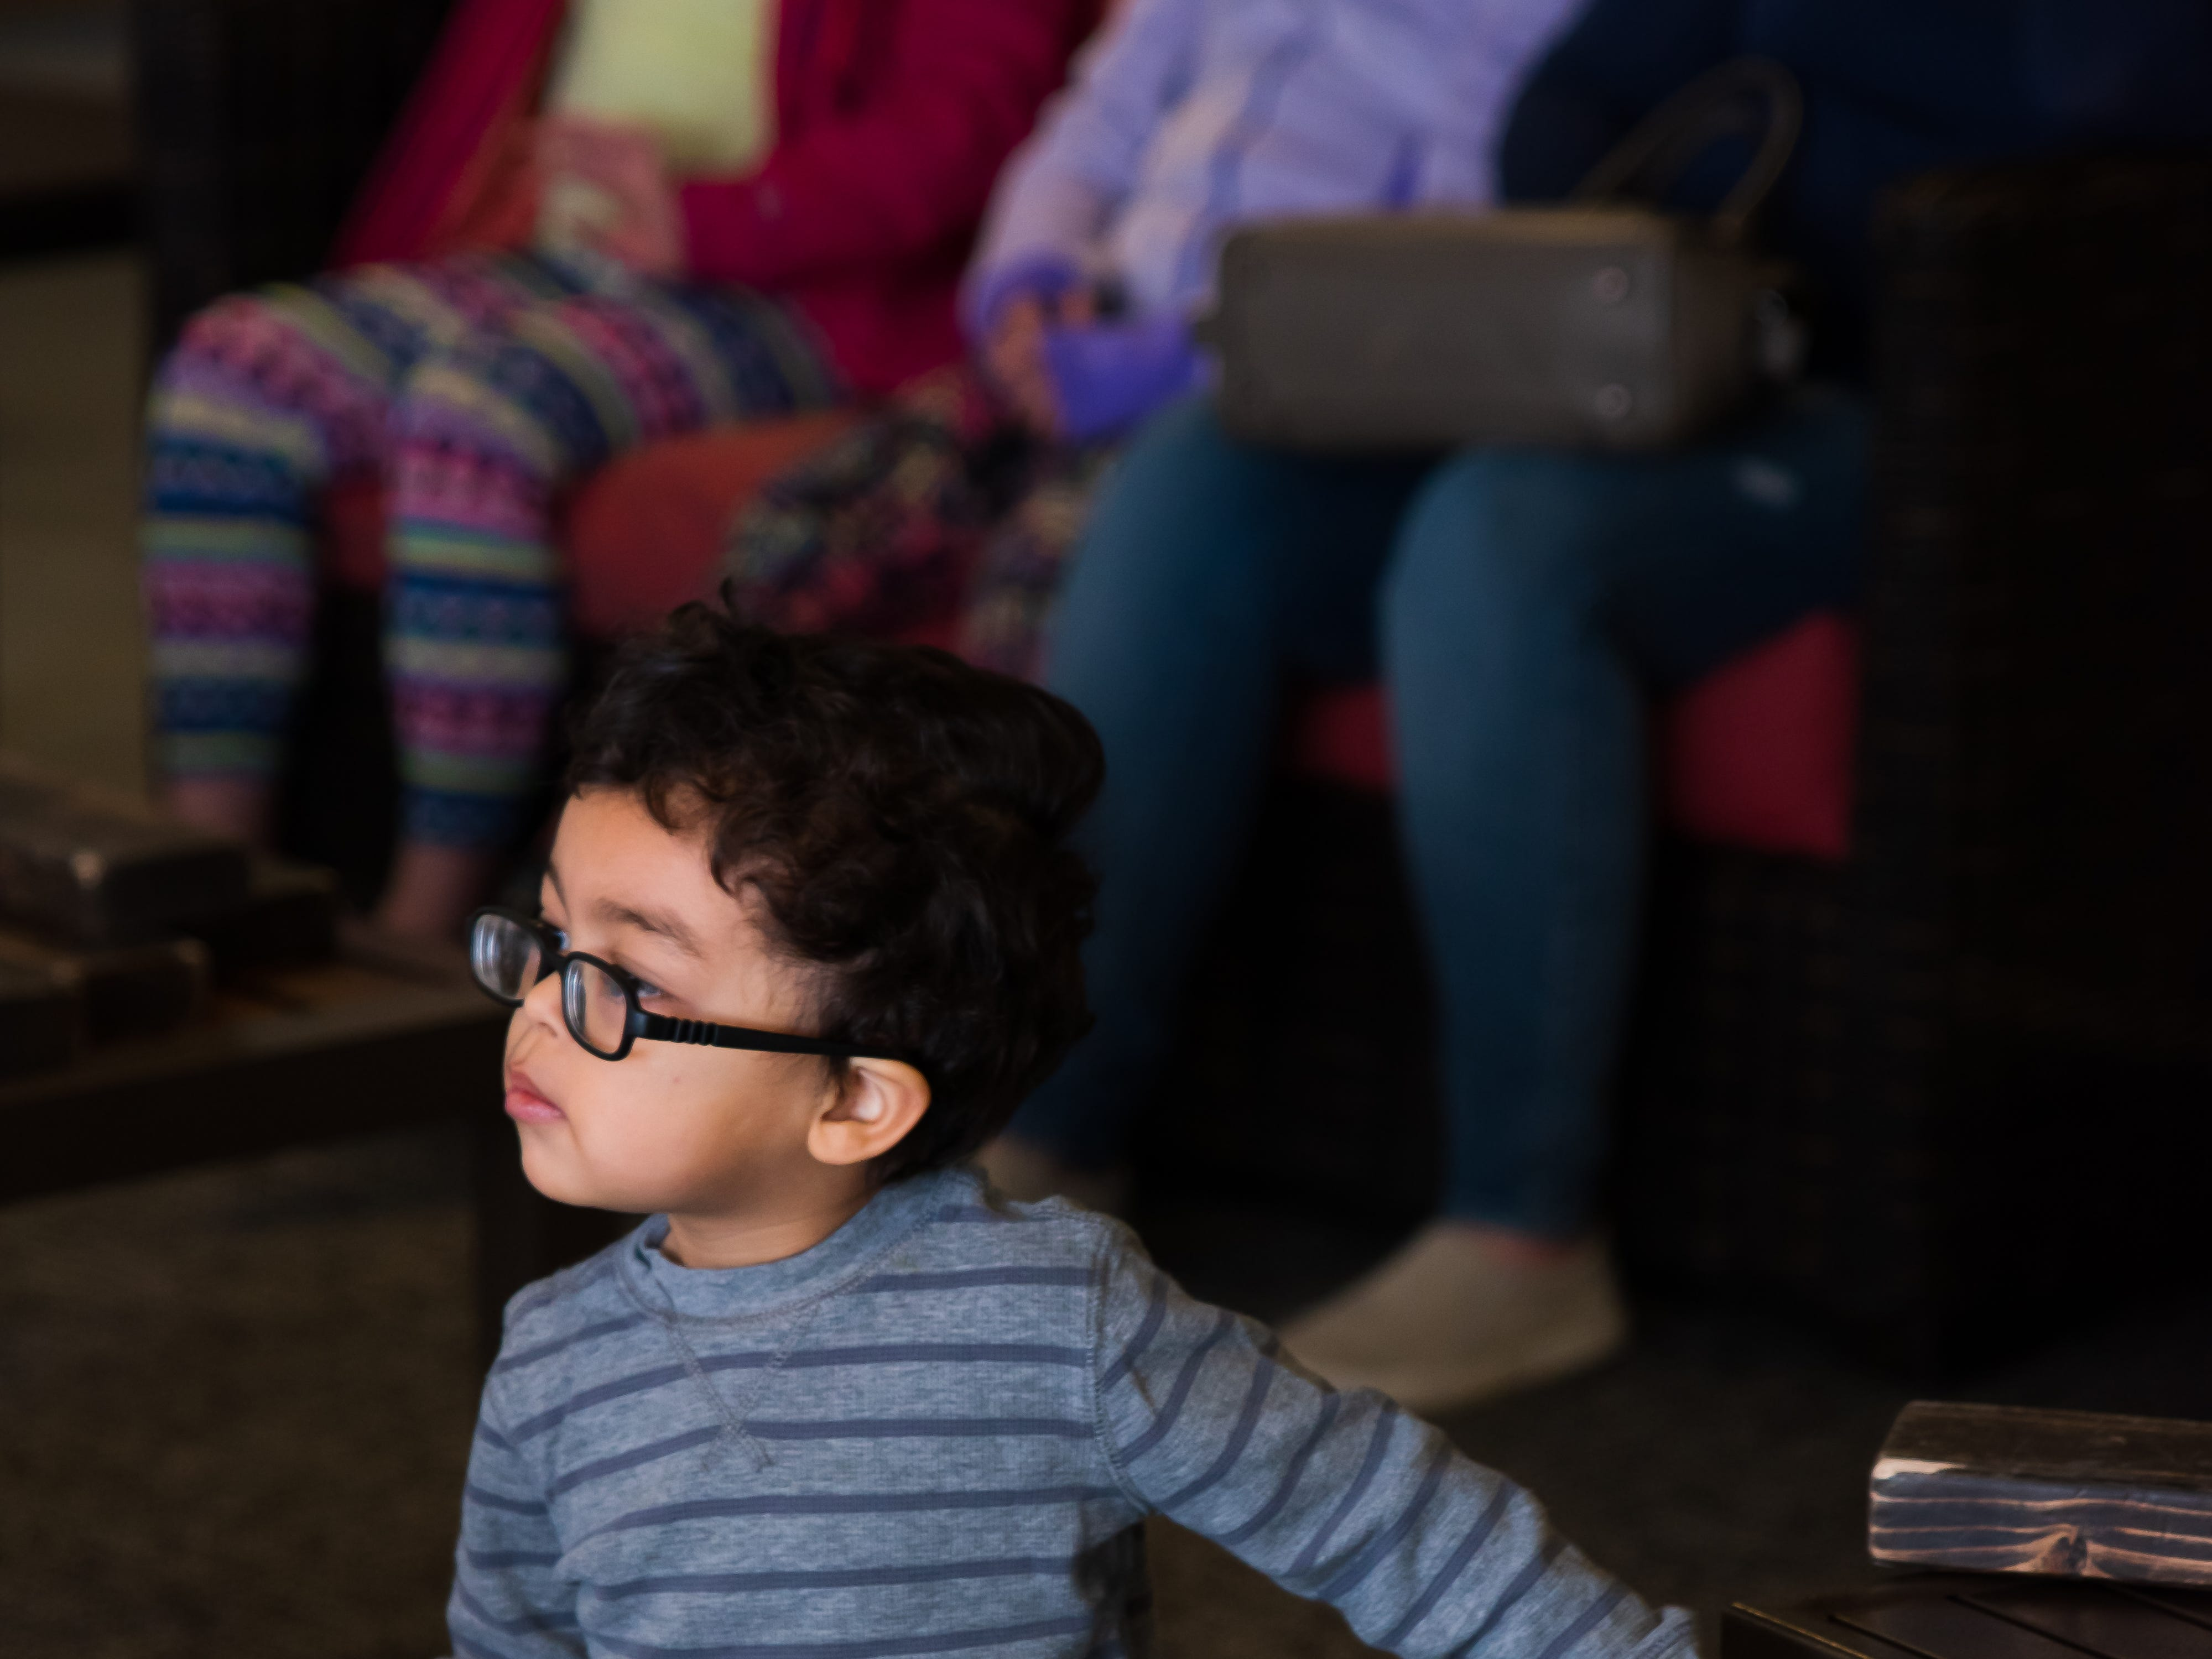 Alistar Lewis, 2, of Waukee attends the Science Center program Wednesday, March 20, 2019, at the Outlets of Des Moines in Altoona.